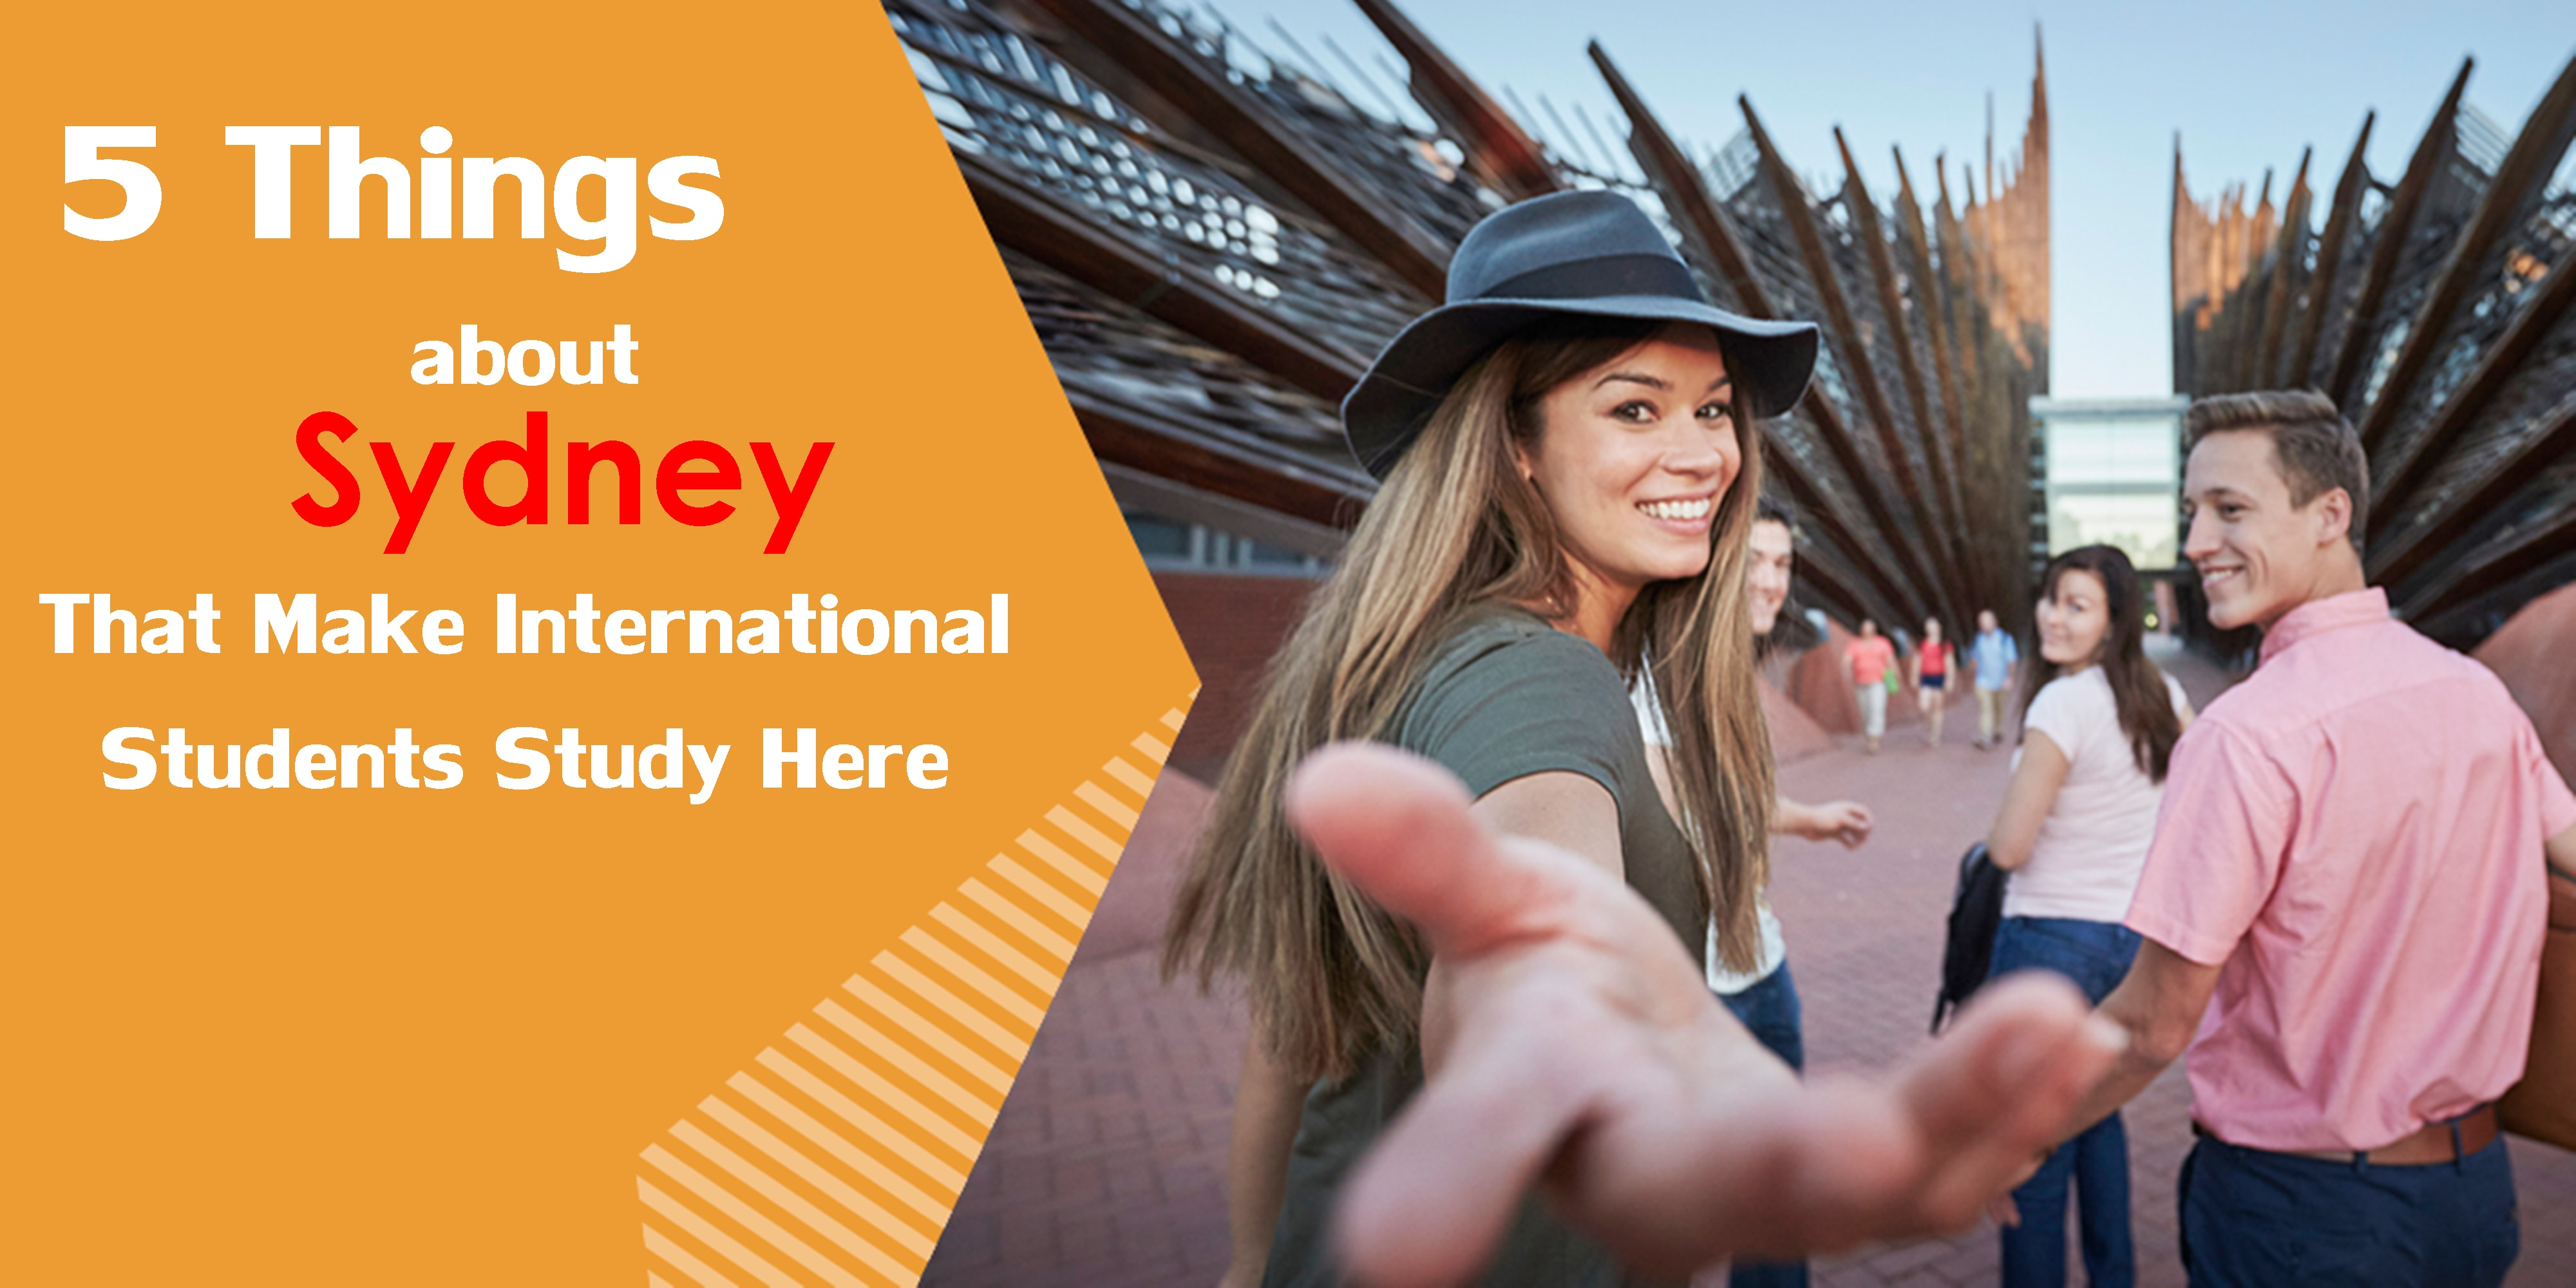 5 Things about Sydney That Make International Students Study Here